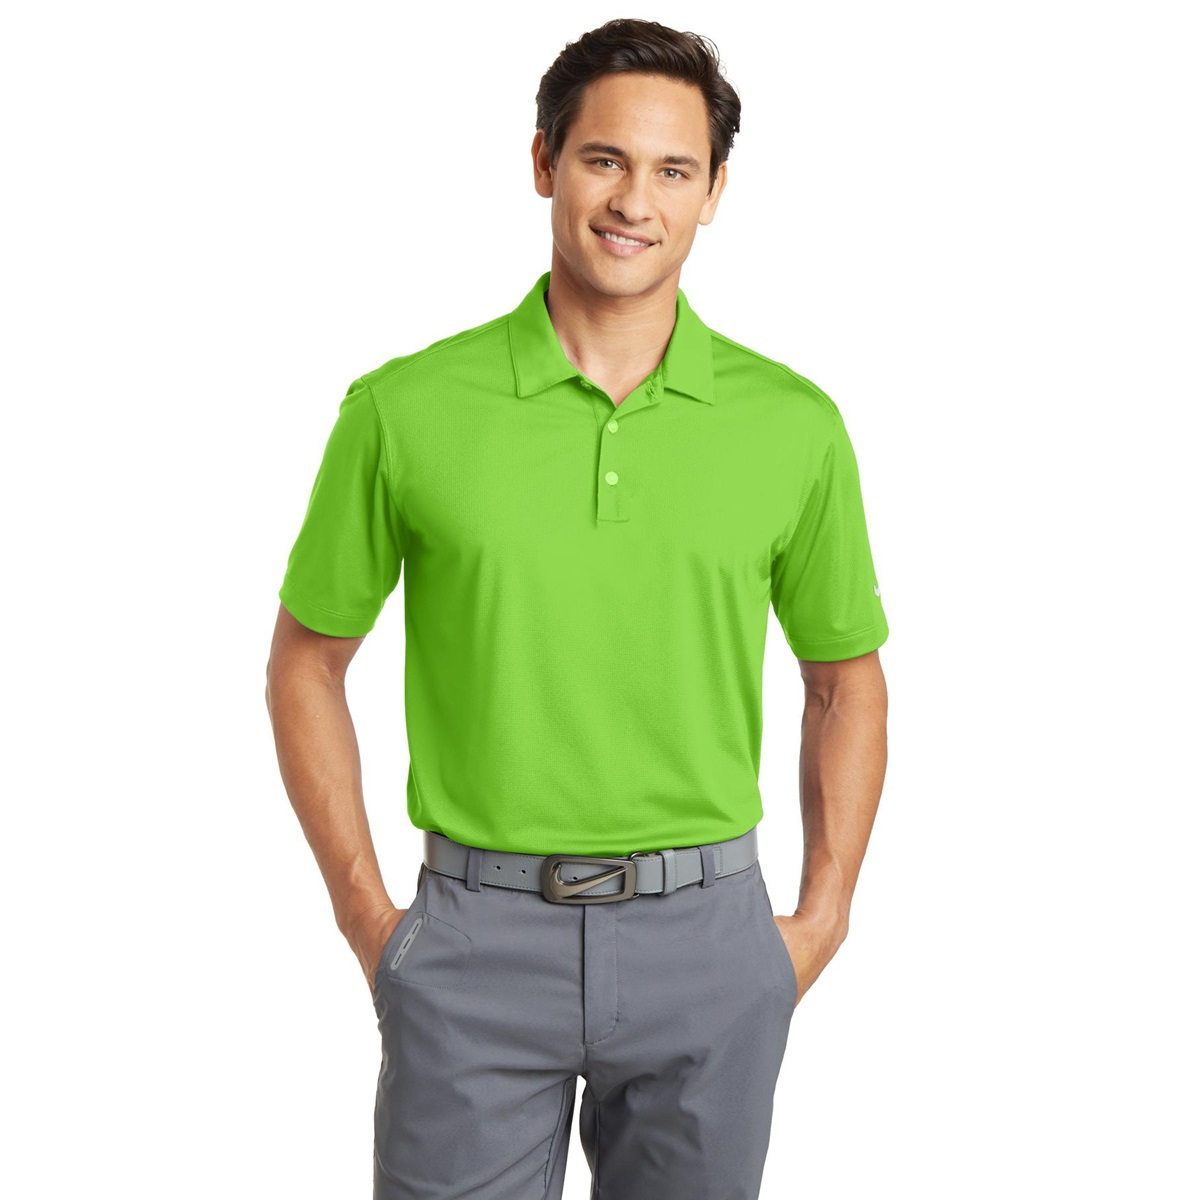 nike golf polo shirts for men